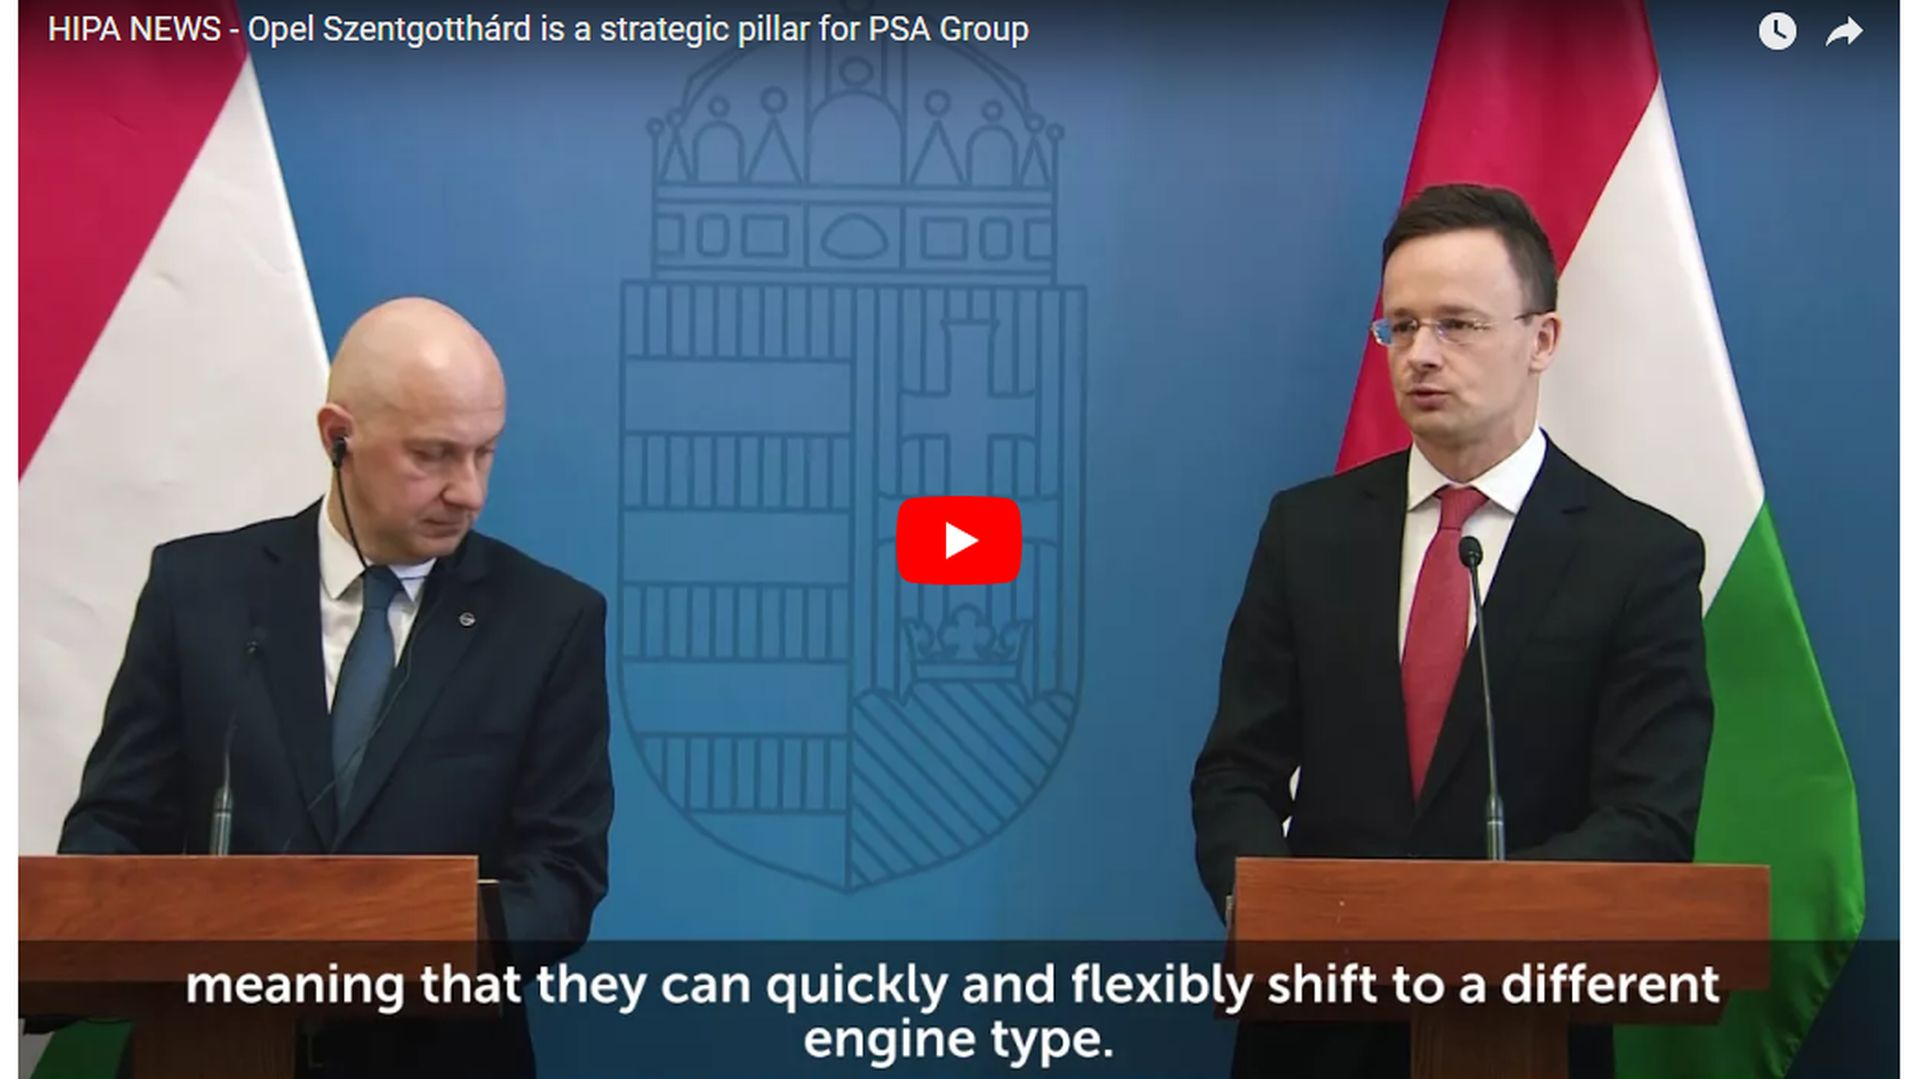 Szentgotthárd as an important pillar of the long-term strategy of Opel and PSA - VIDEO REPORT